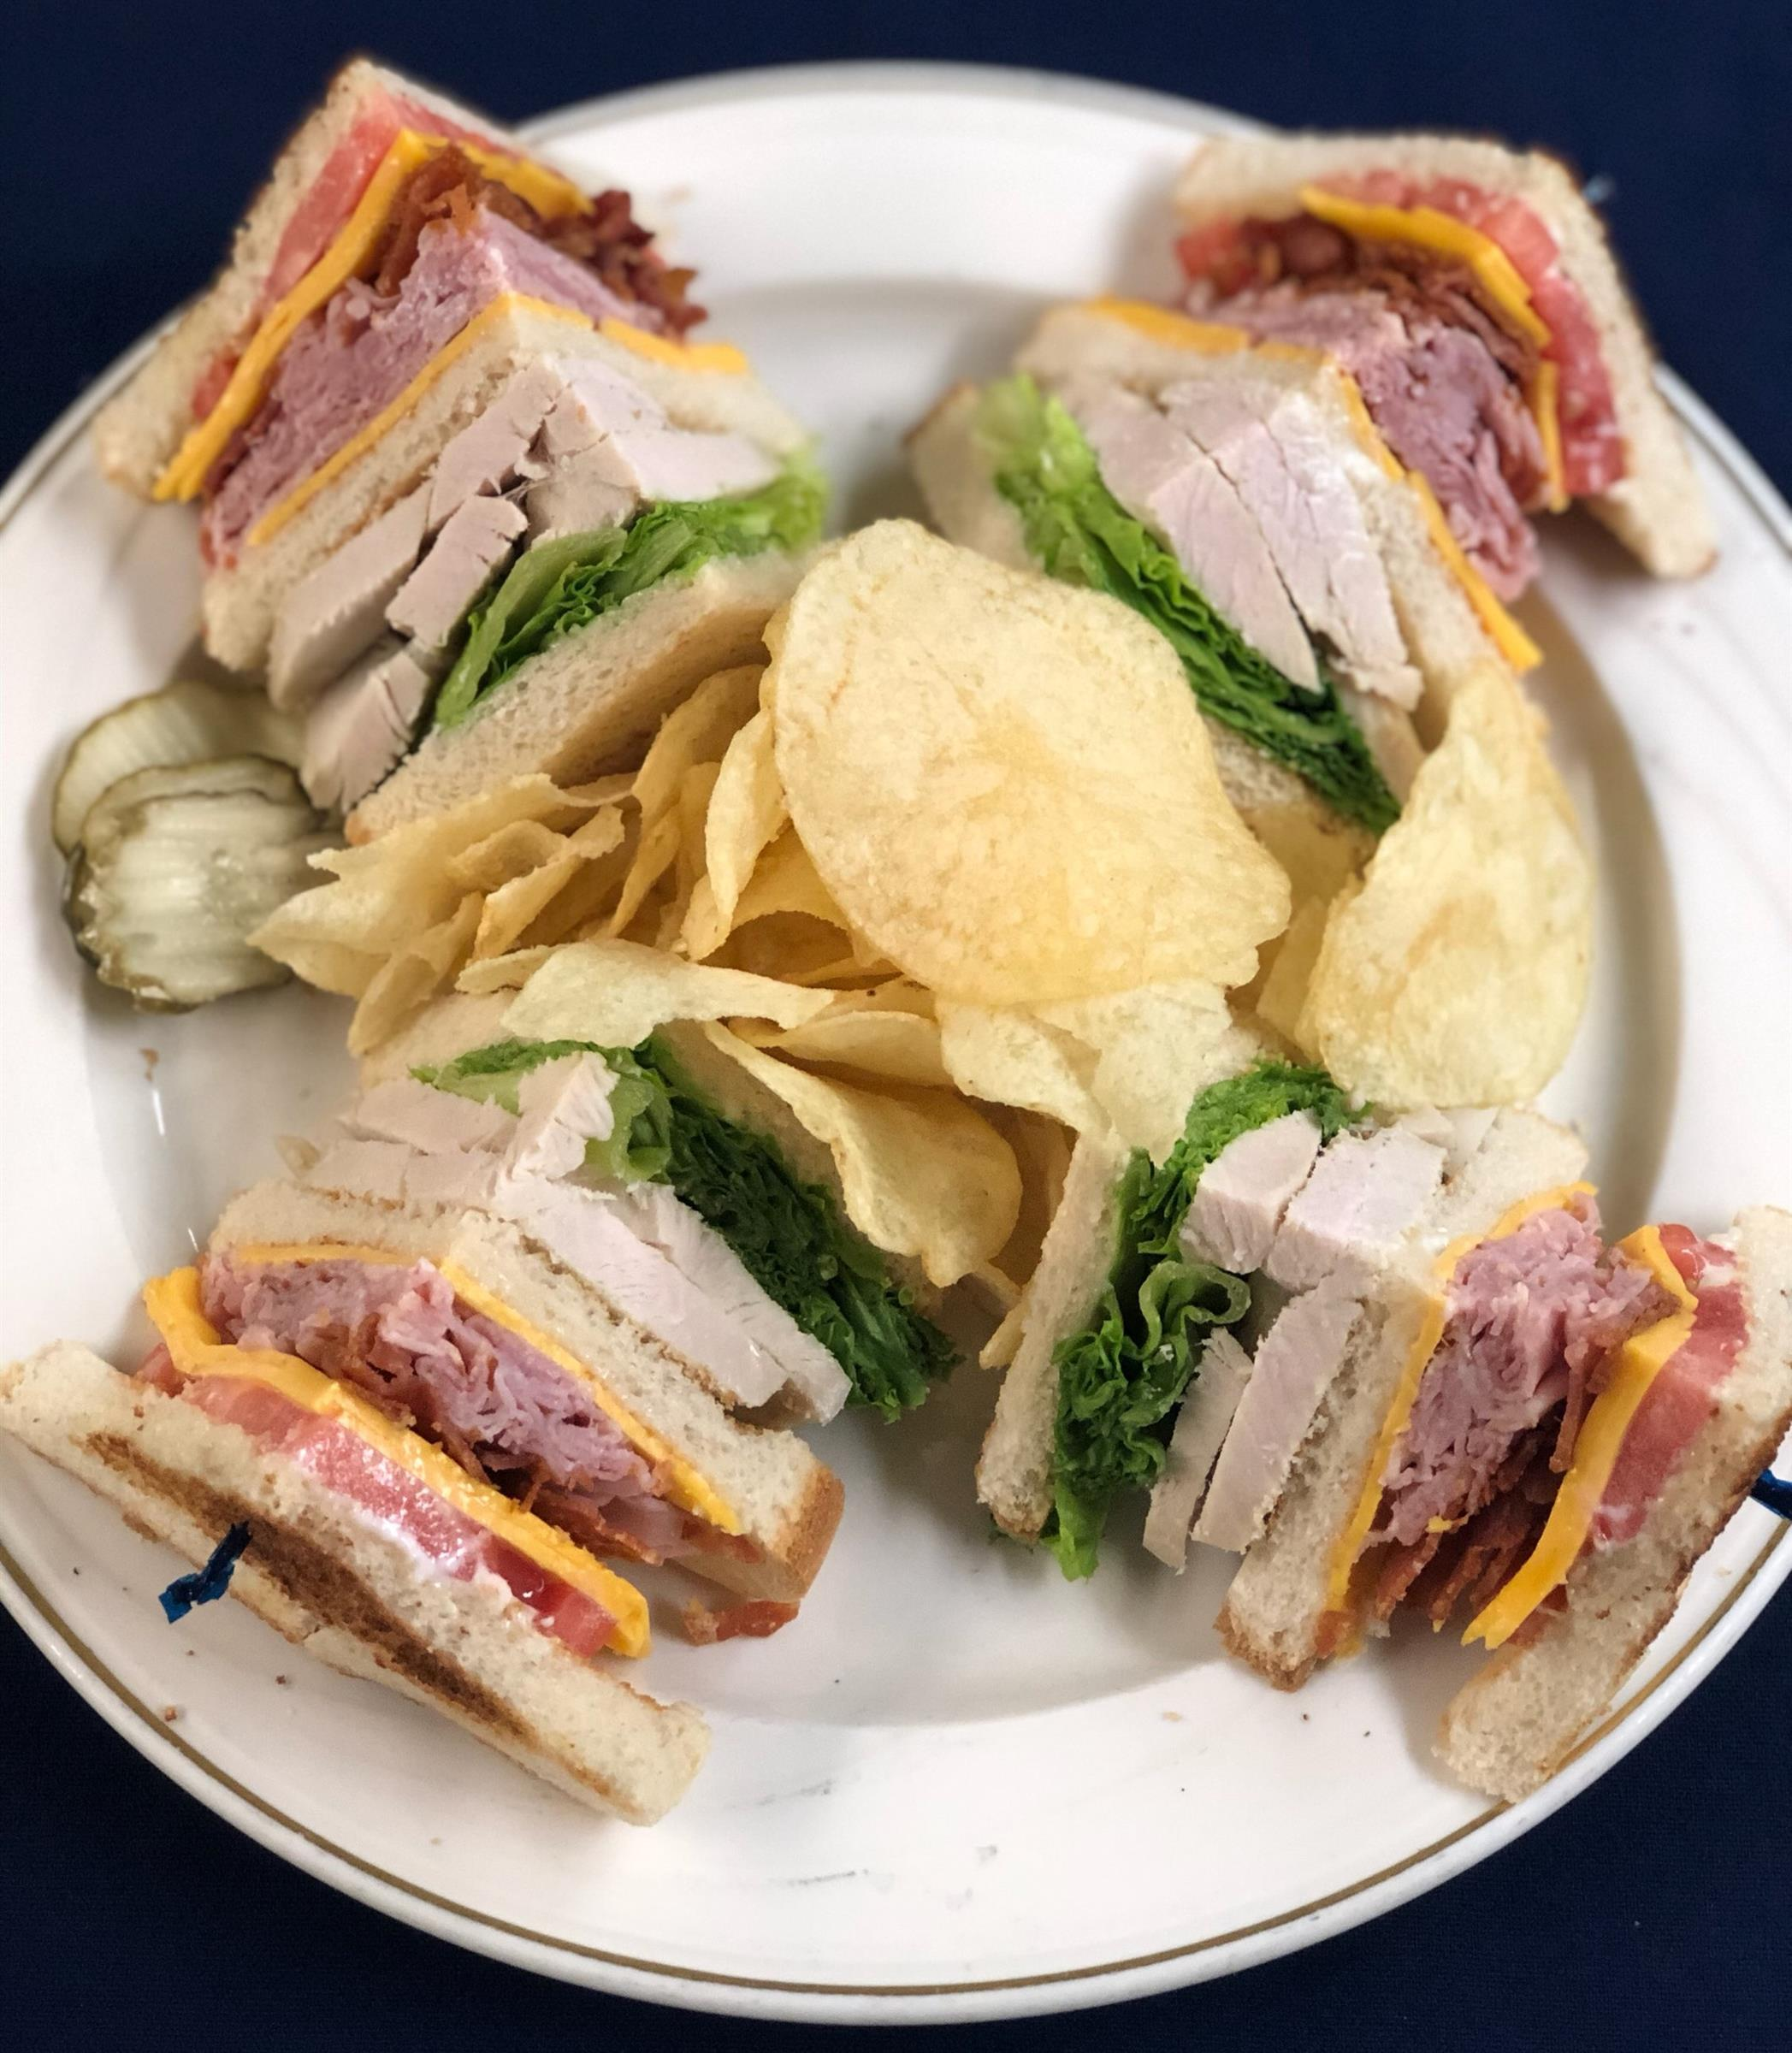 Turkey club sandwich with lettuce, cheese, ham, bacon and cheddar cheese with potato chips